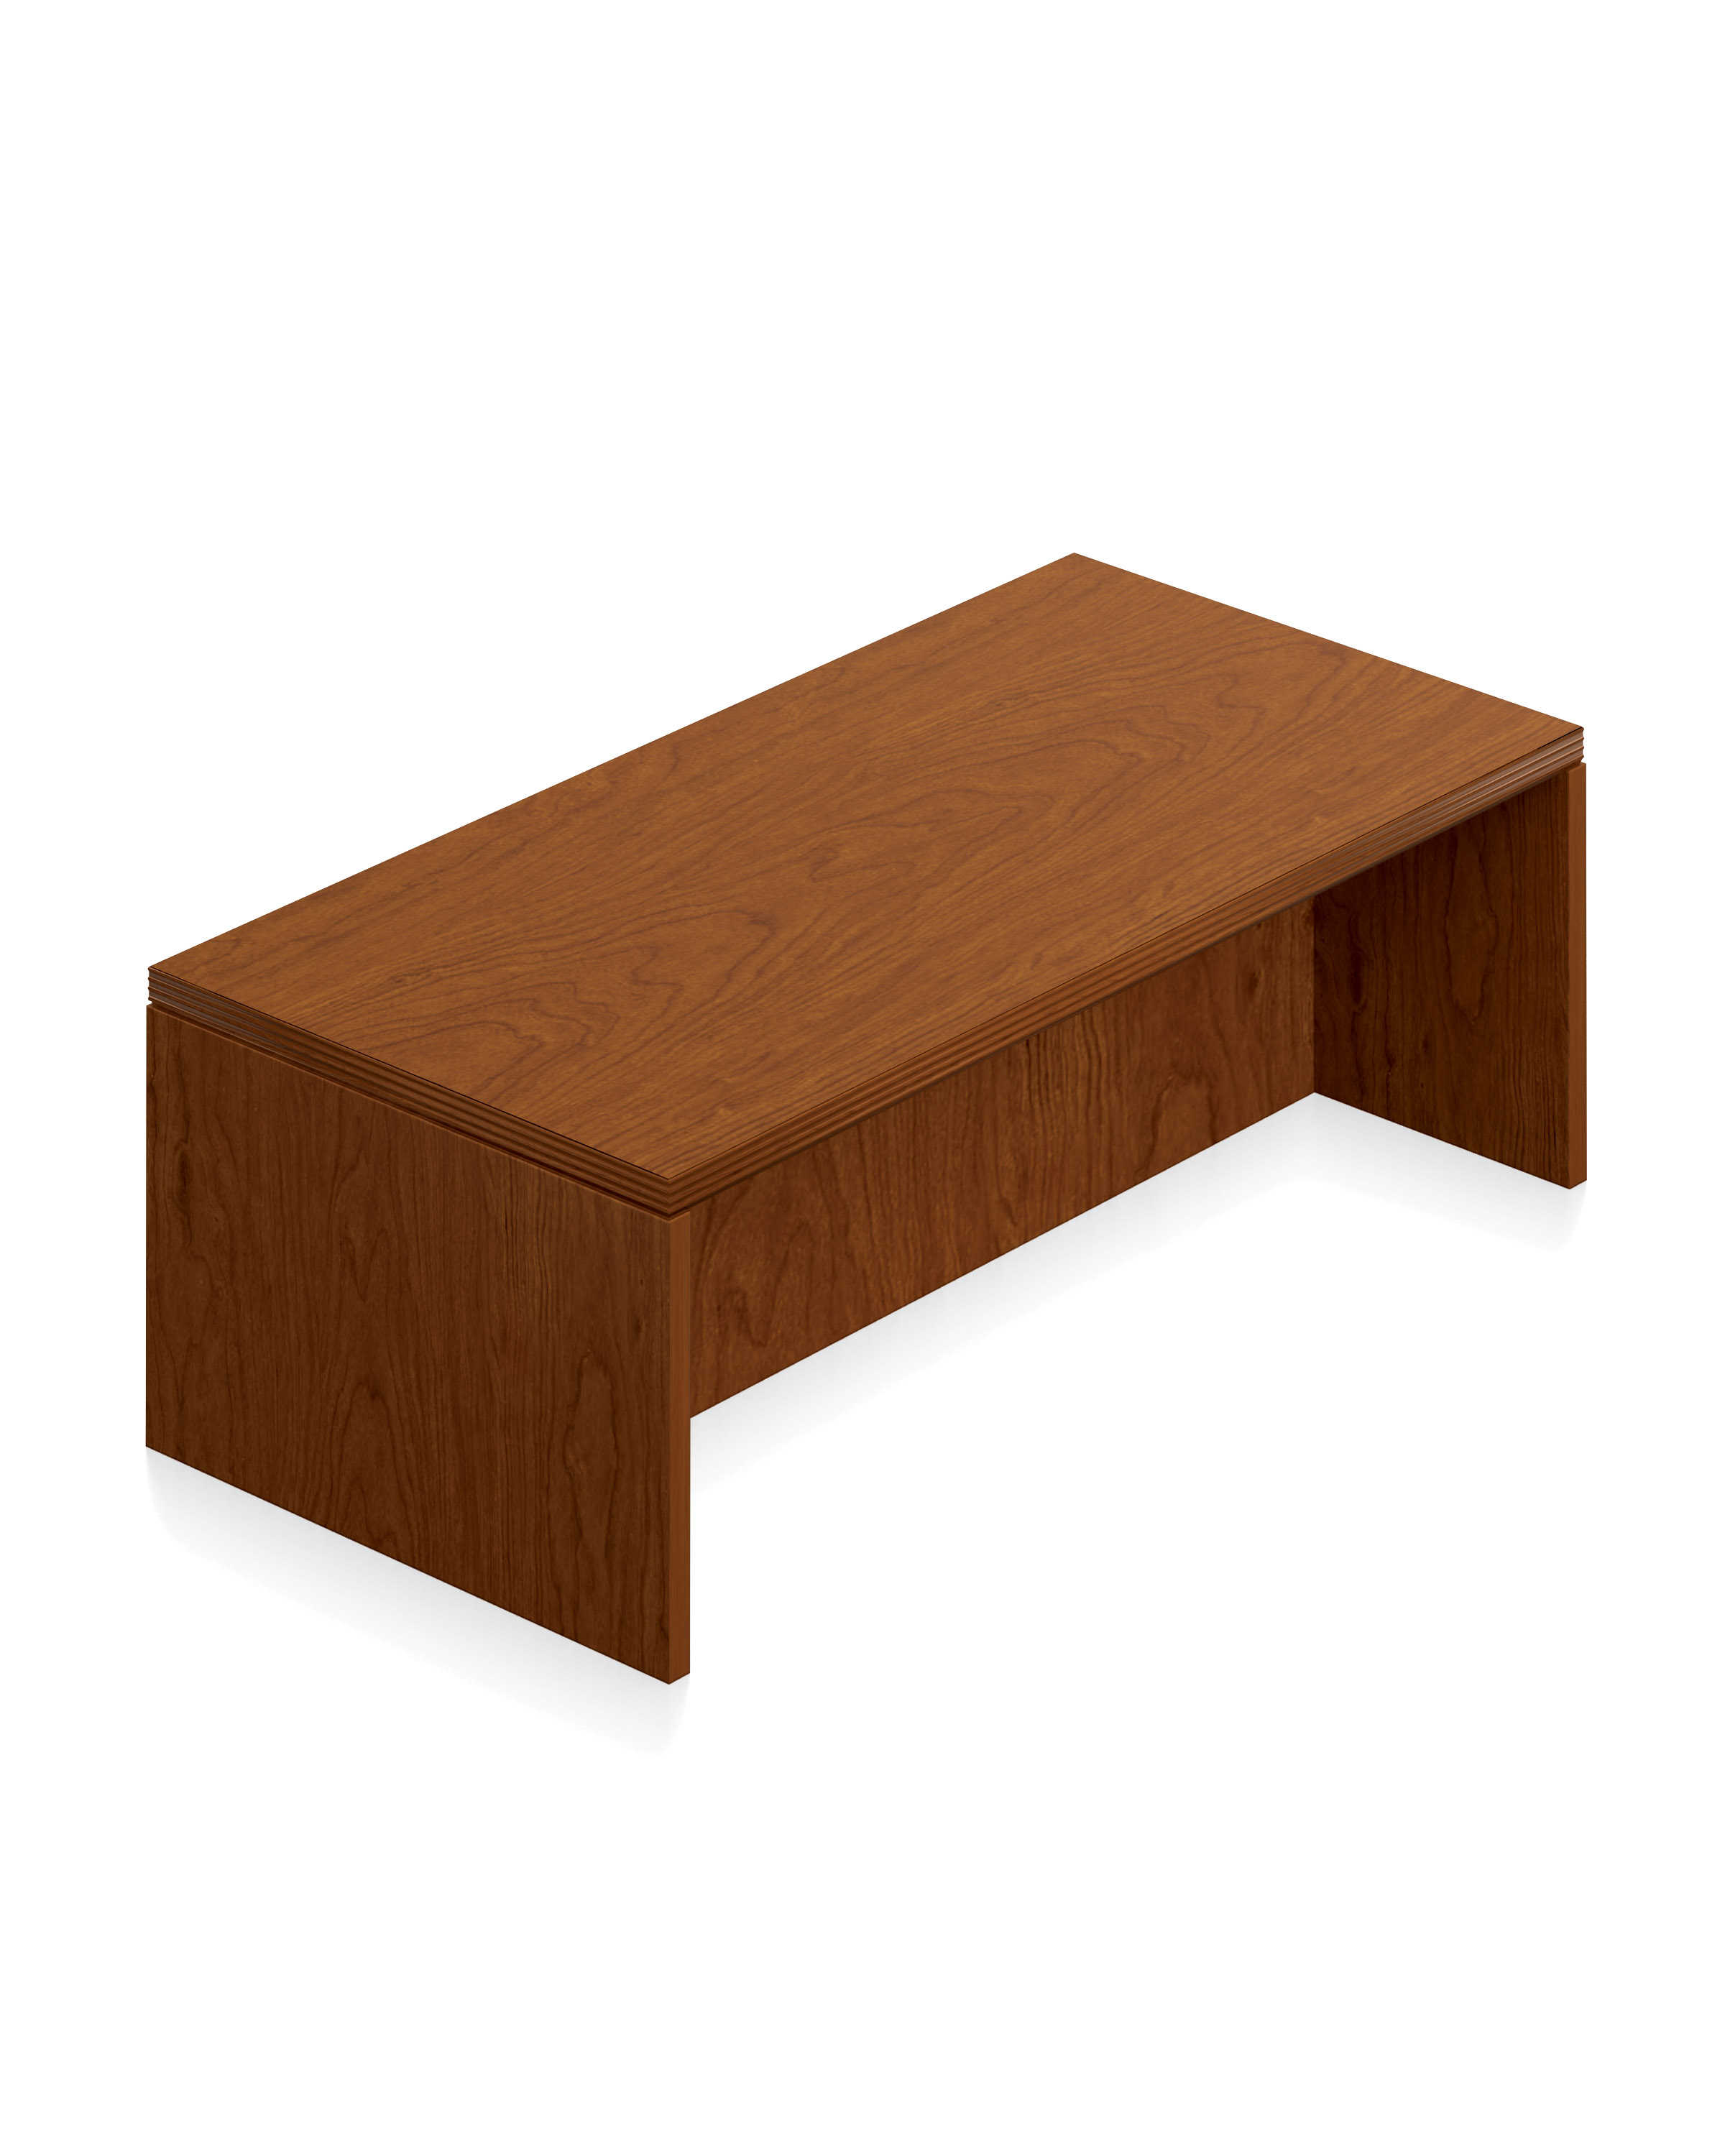 New Real Wood Veneer Coffee Table By Offices To Go New And Used Office Furniture In Los